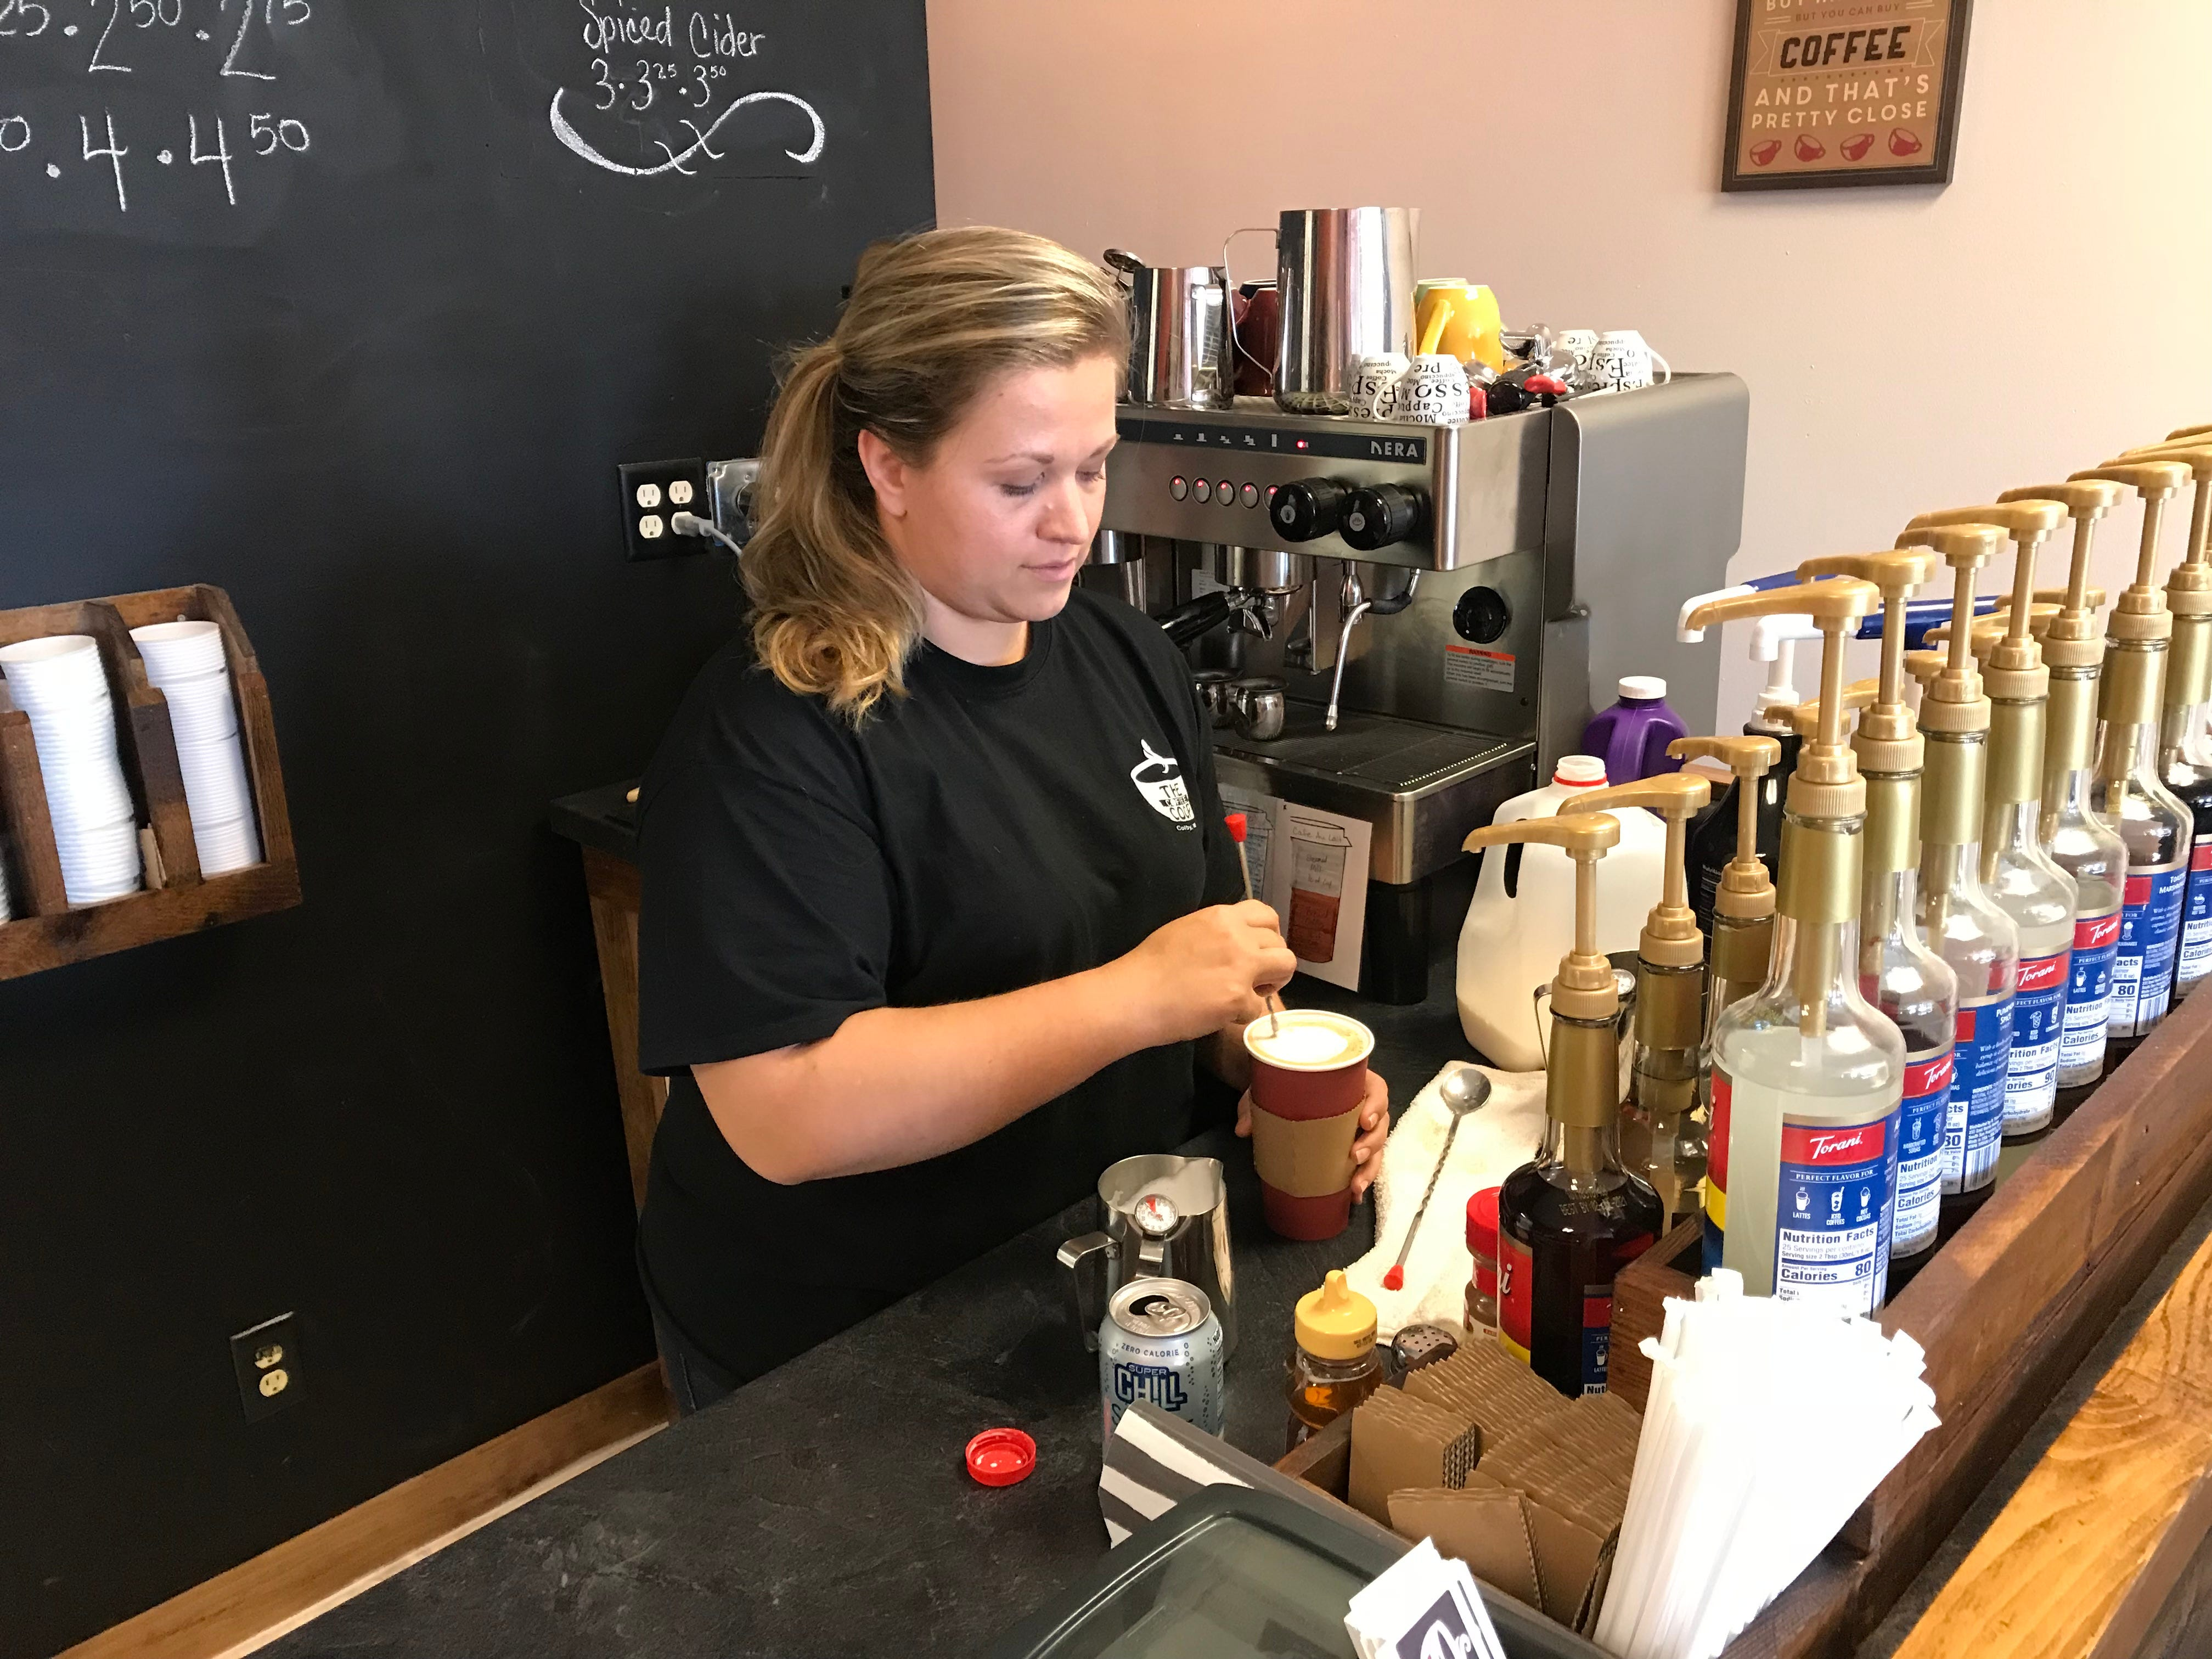 Ariel Oehmichen putting the finishing touches on a white chocolate mocha coffee at The Coffee Coop in Colby.